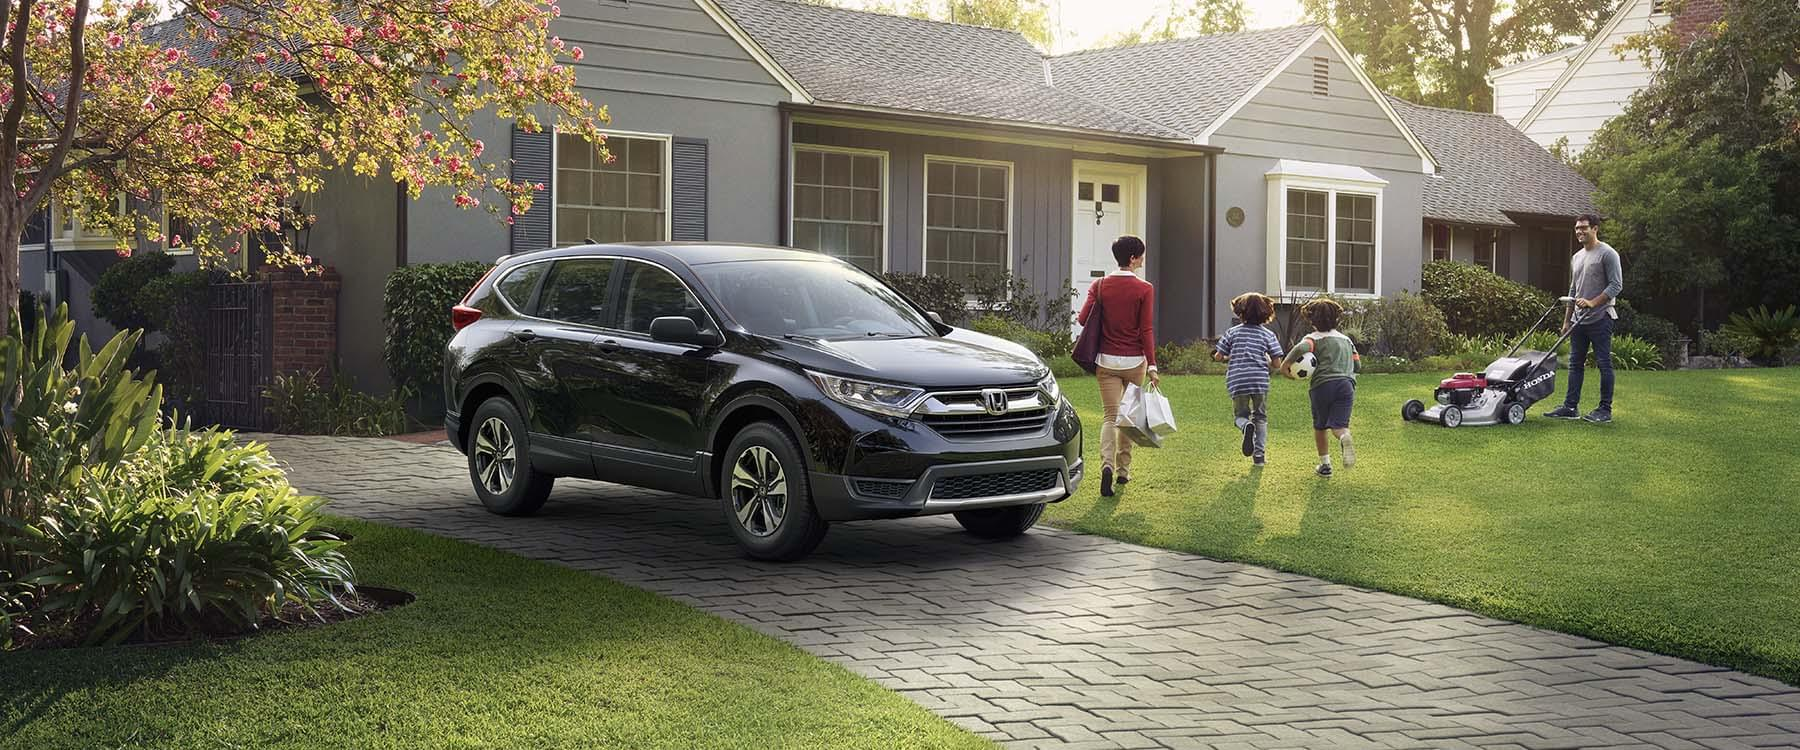 2017 Honda CR-V Family